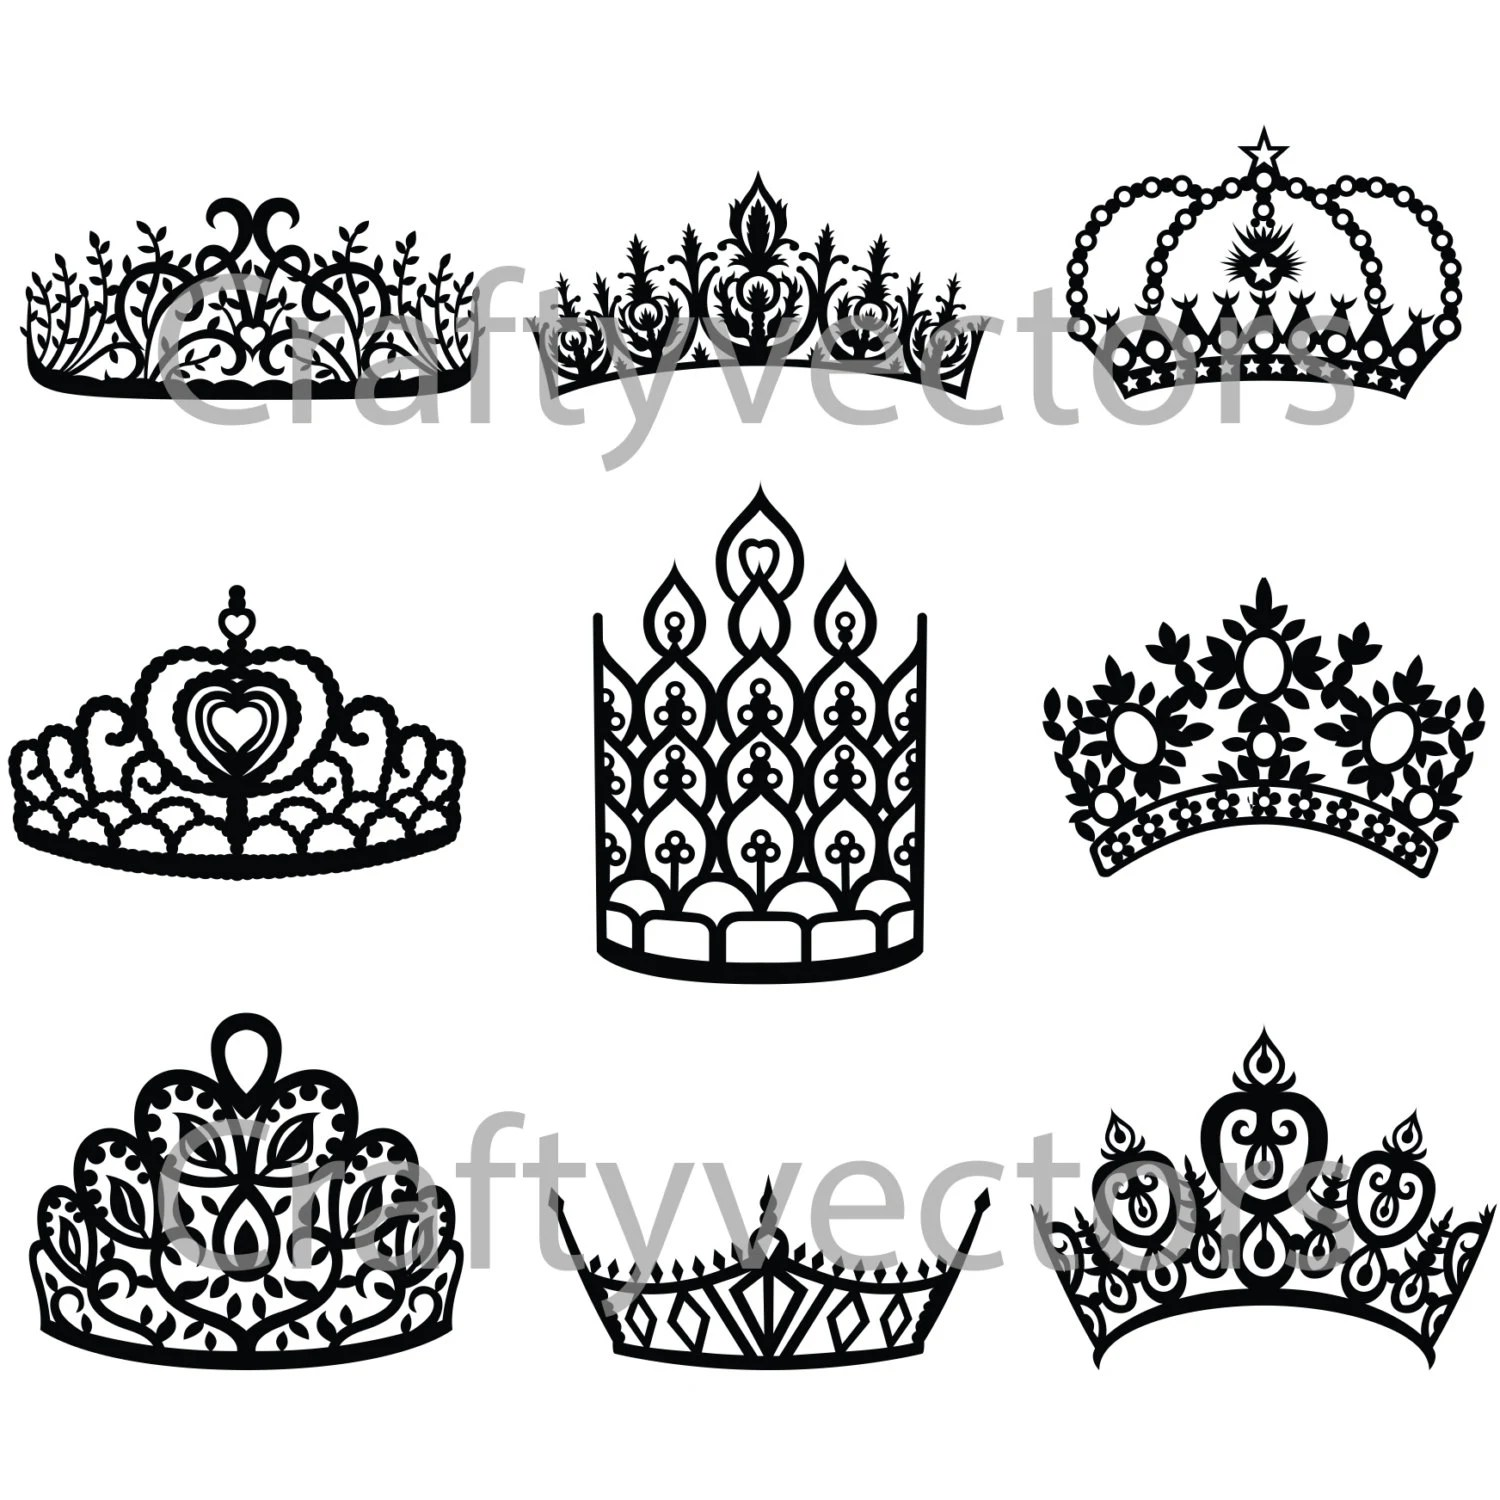 Crowns and Tiaras 2 vector file from CraftyVectors on Etsy